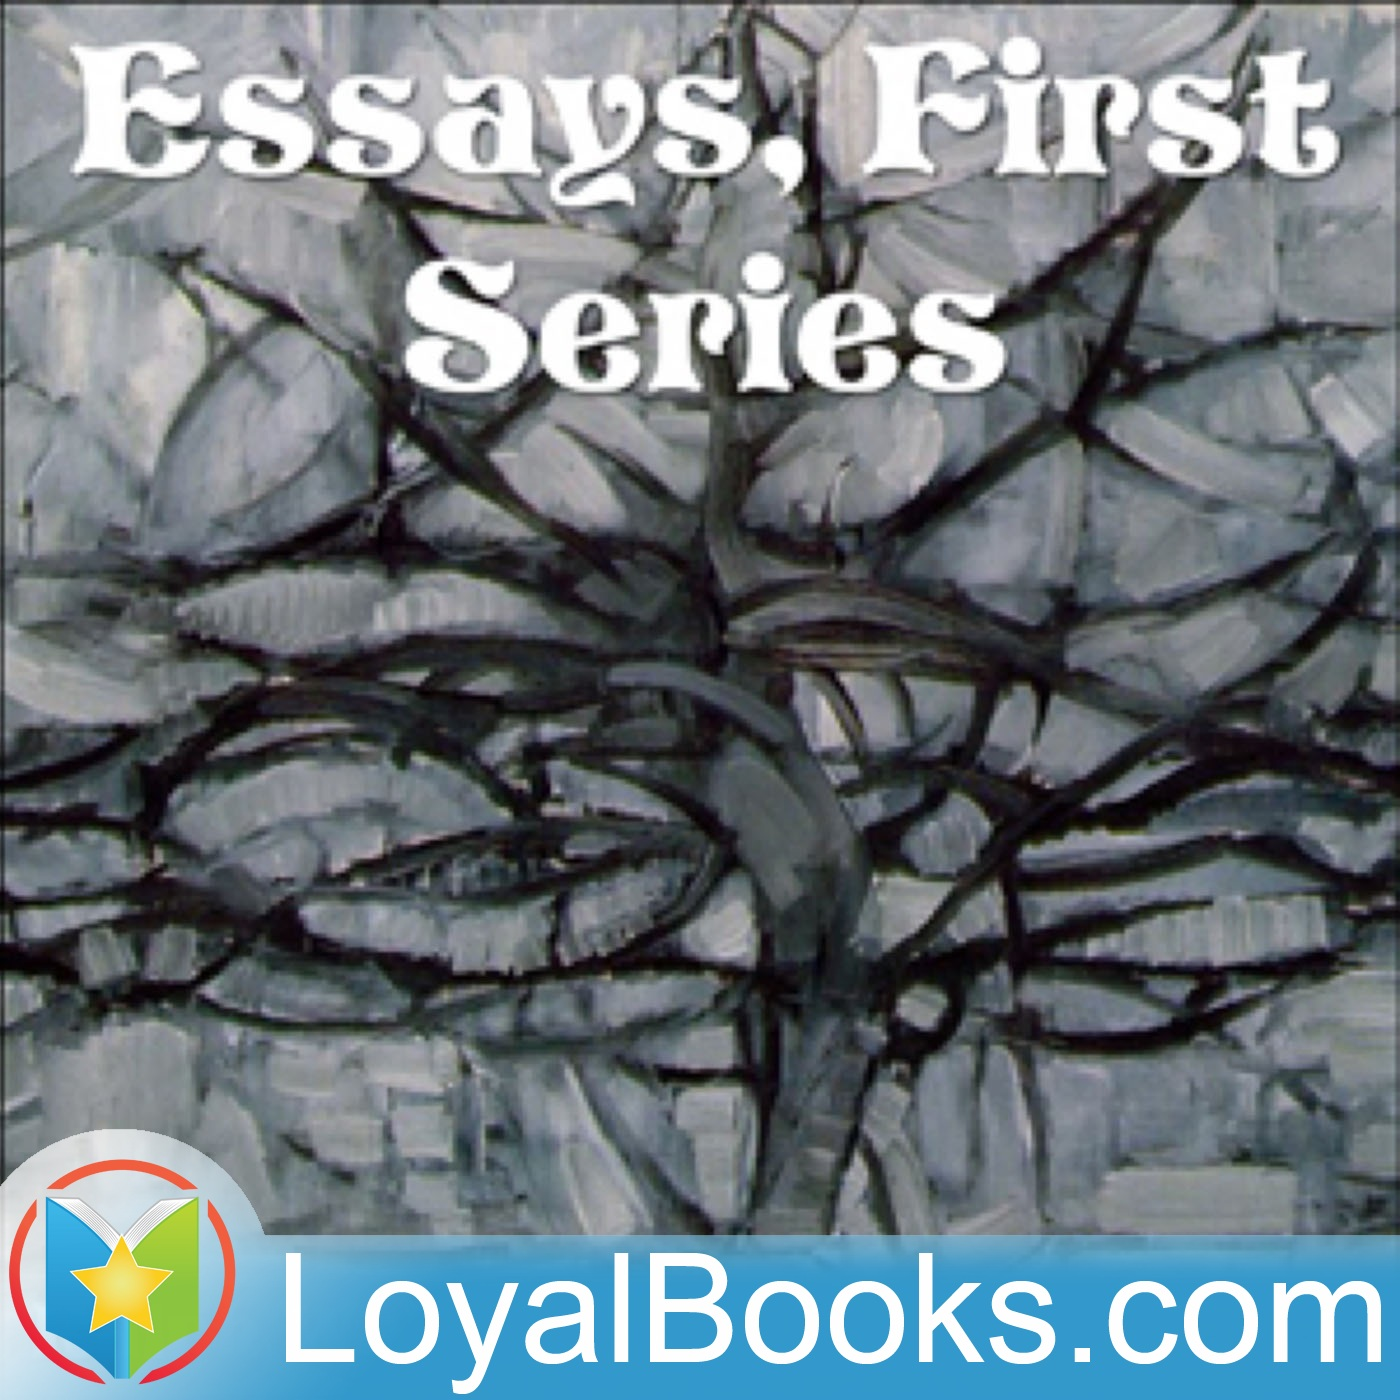 015 Essay Example Essays First Series By Ralph Waldo Stunning In Zen Buddhism Emerson's Value Full